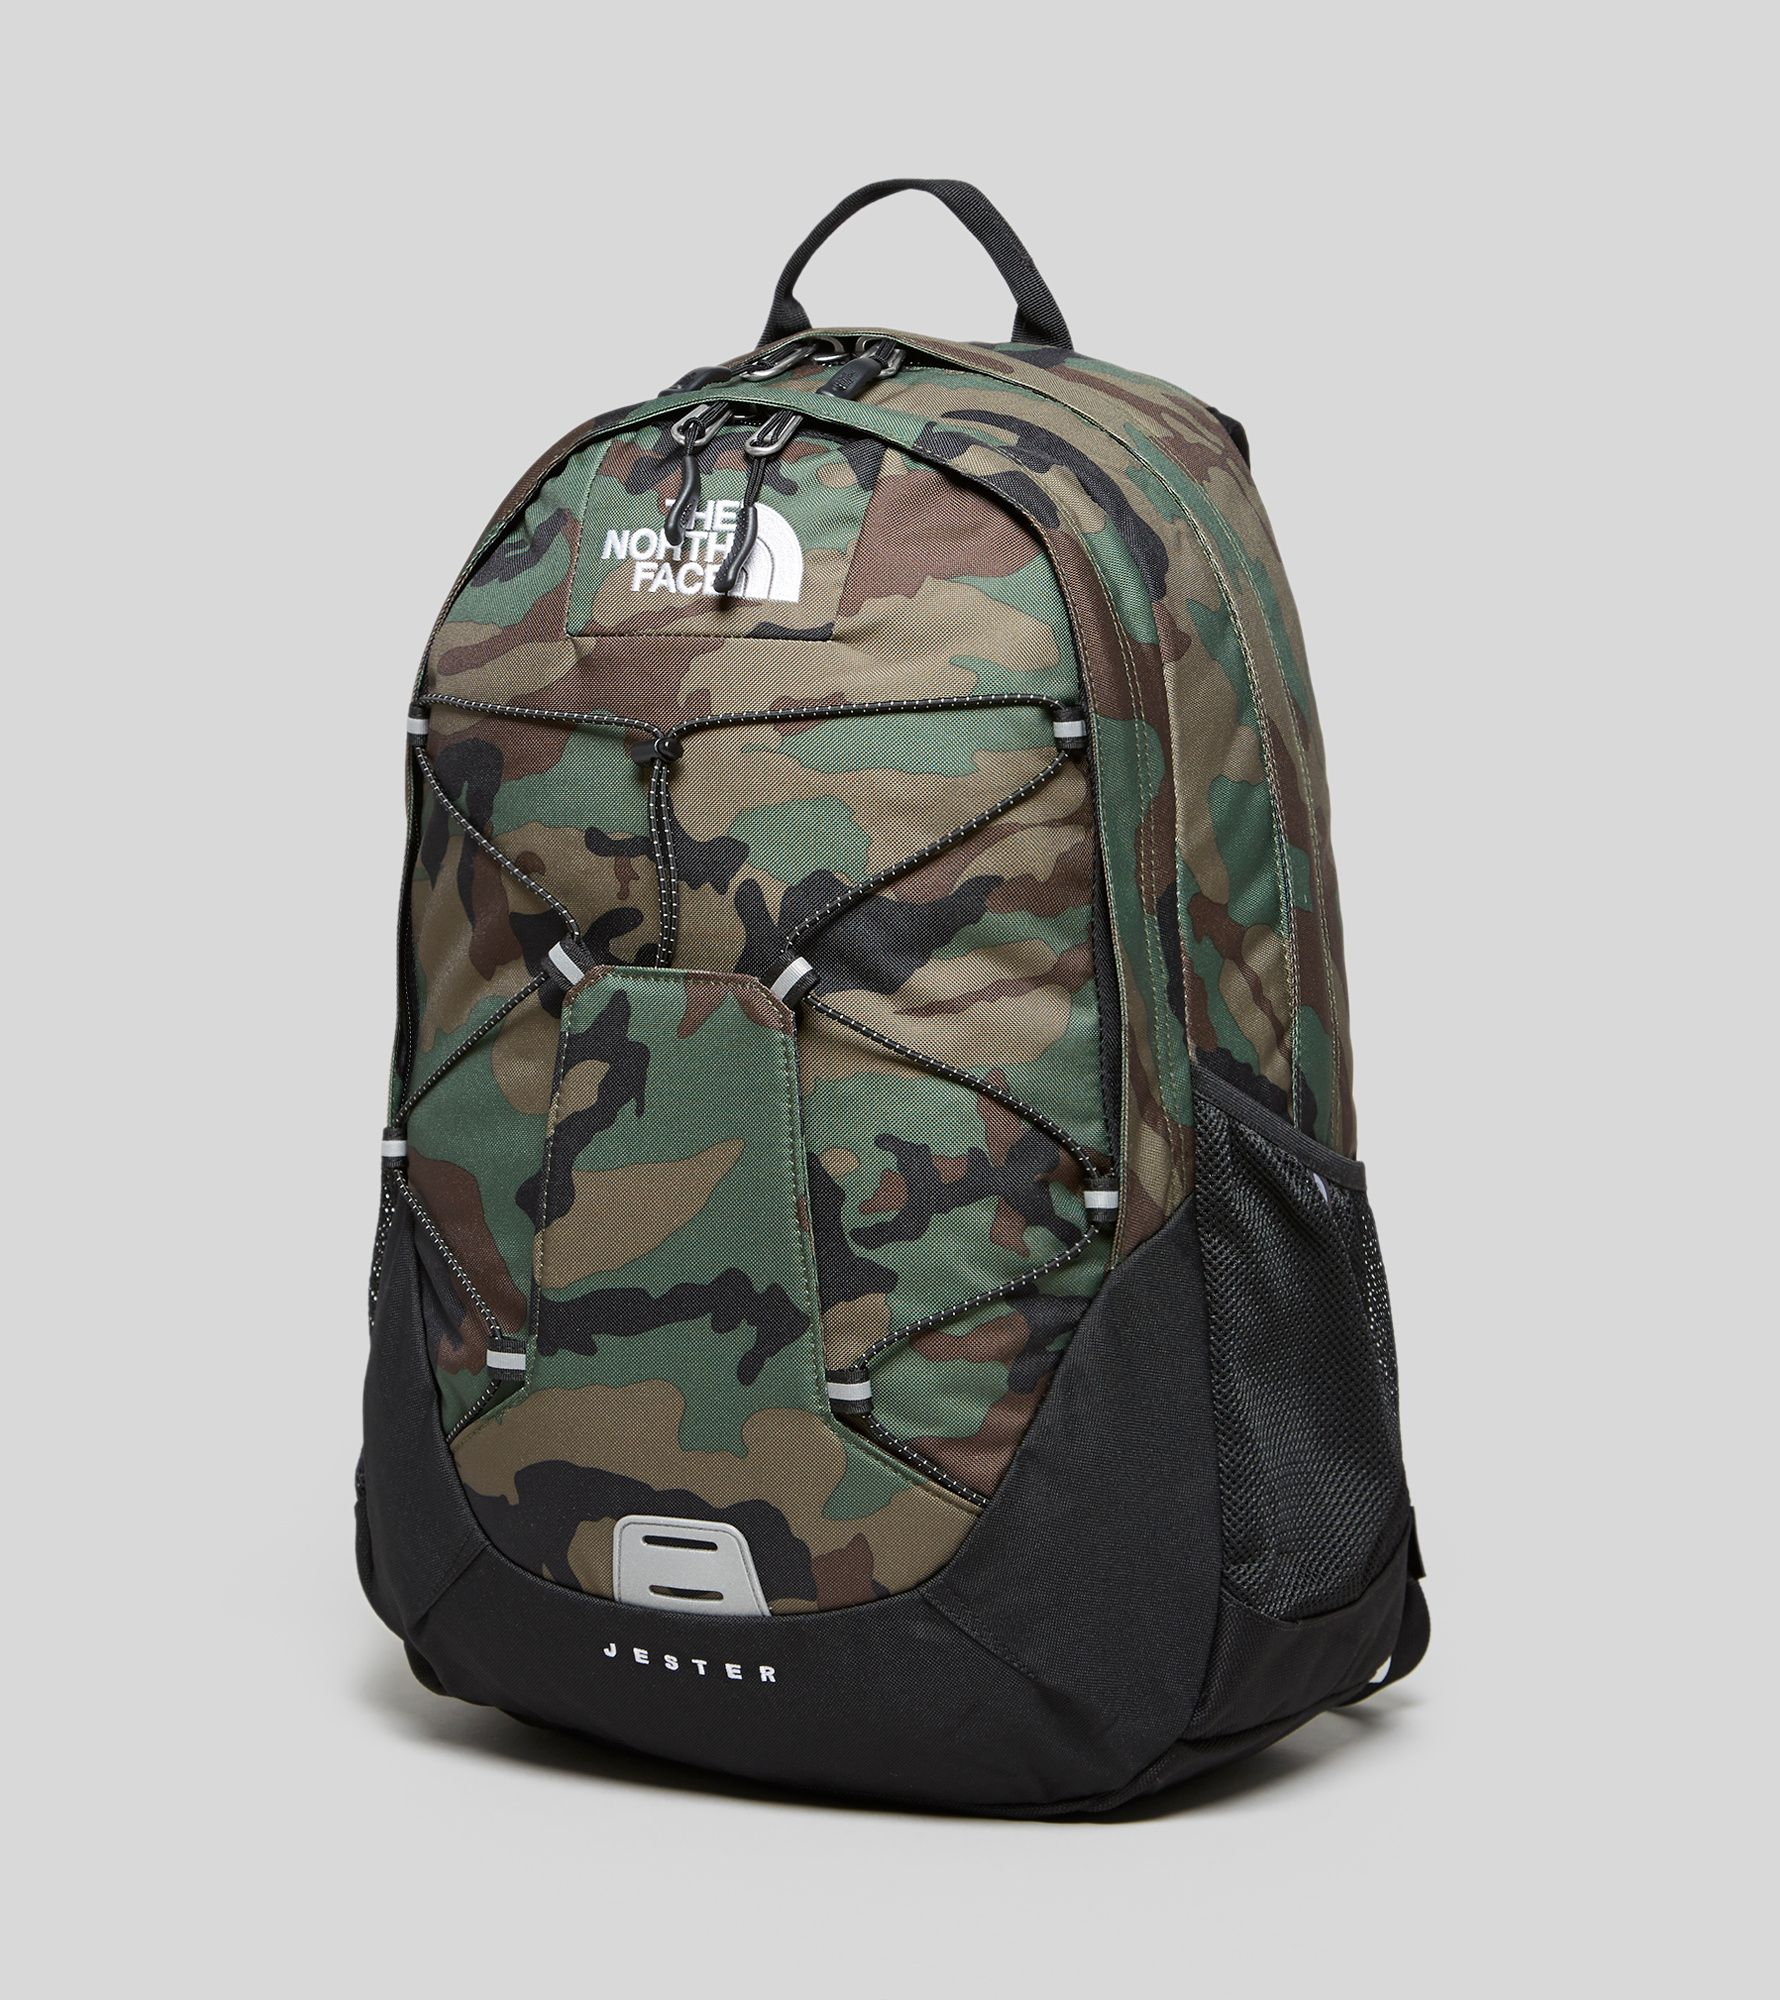 81b5ef1b6e55 North Face Jester Backpack Sale- Fenix Toulouse Handball